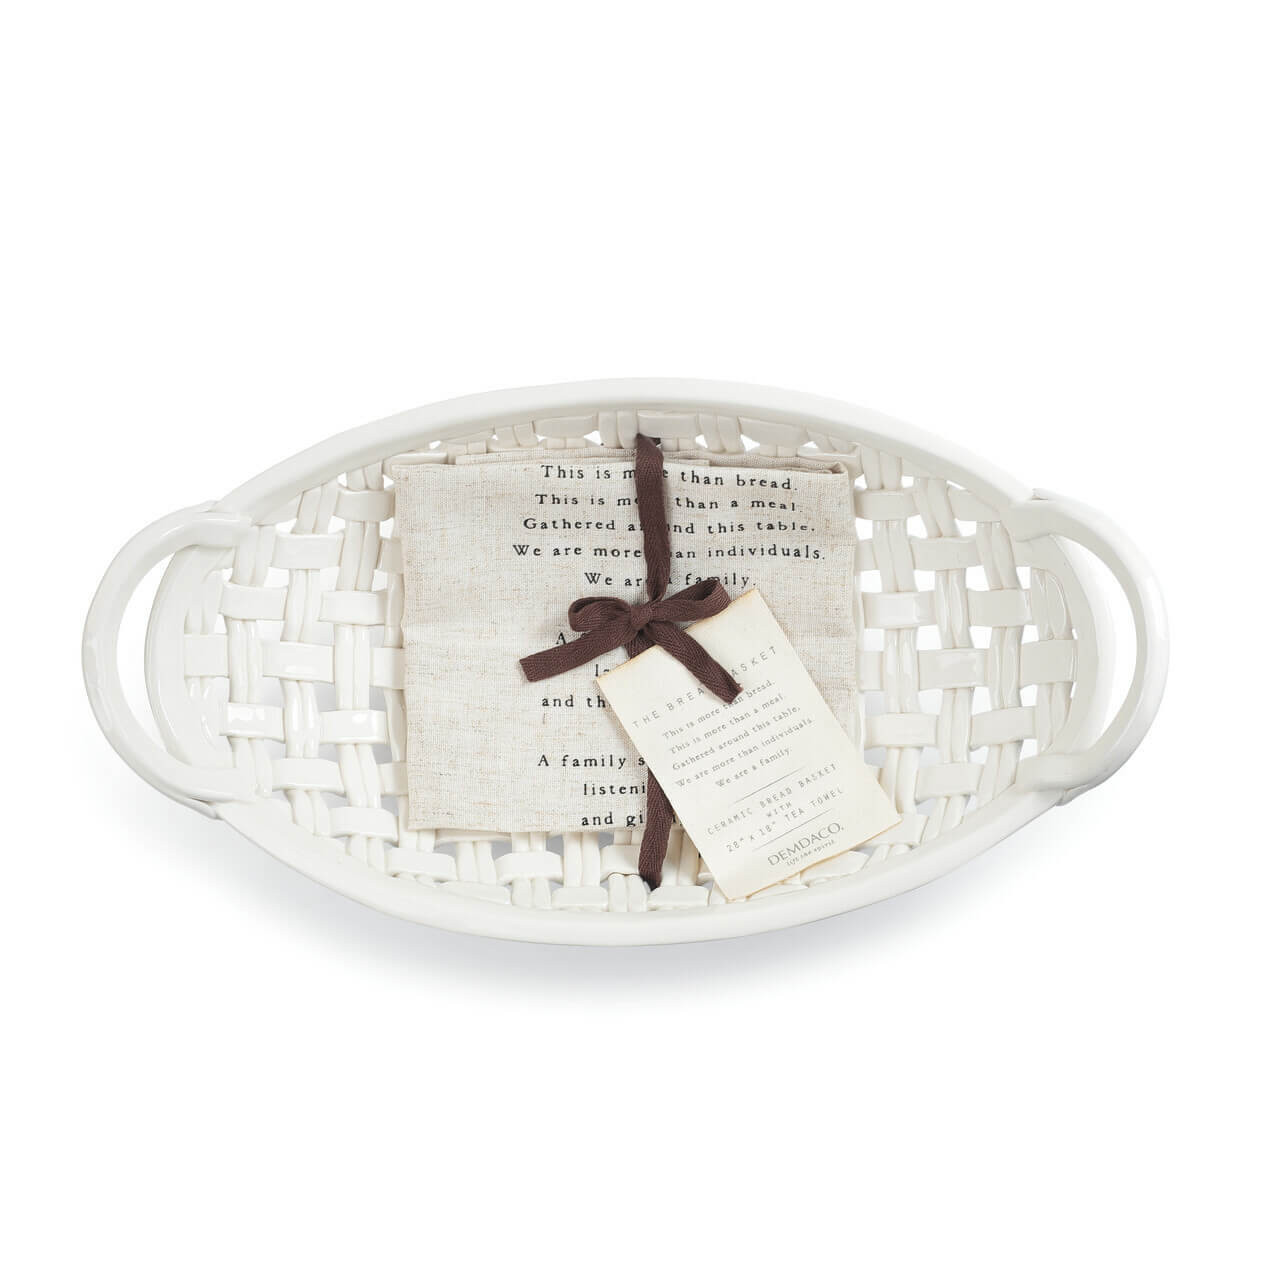 This ceramic interlaced woven bowl is a welcoming and warm way to serve and break bread with the ones closest to you. The accompanying linen tells the importance of family sharing meals. This is the perfect housewarming gift, hostess gift, or for any holiday that celebrates family.